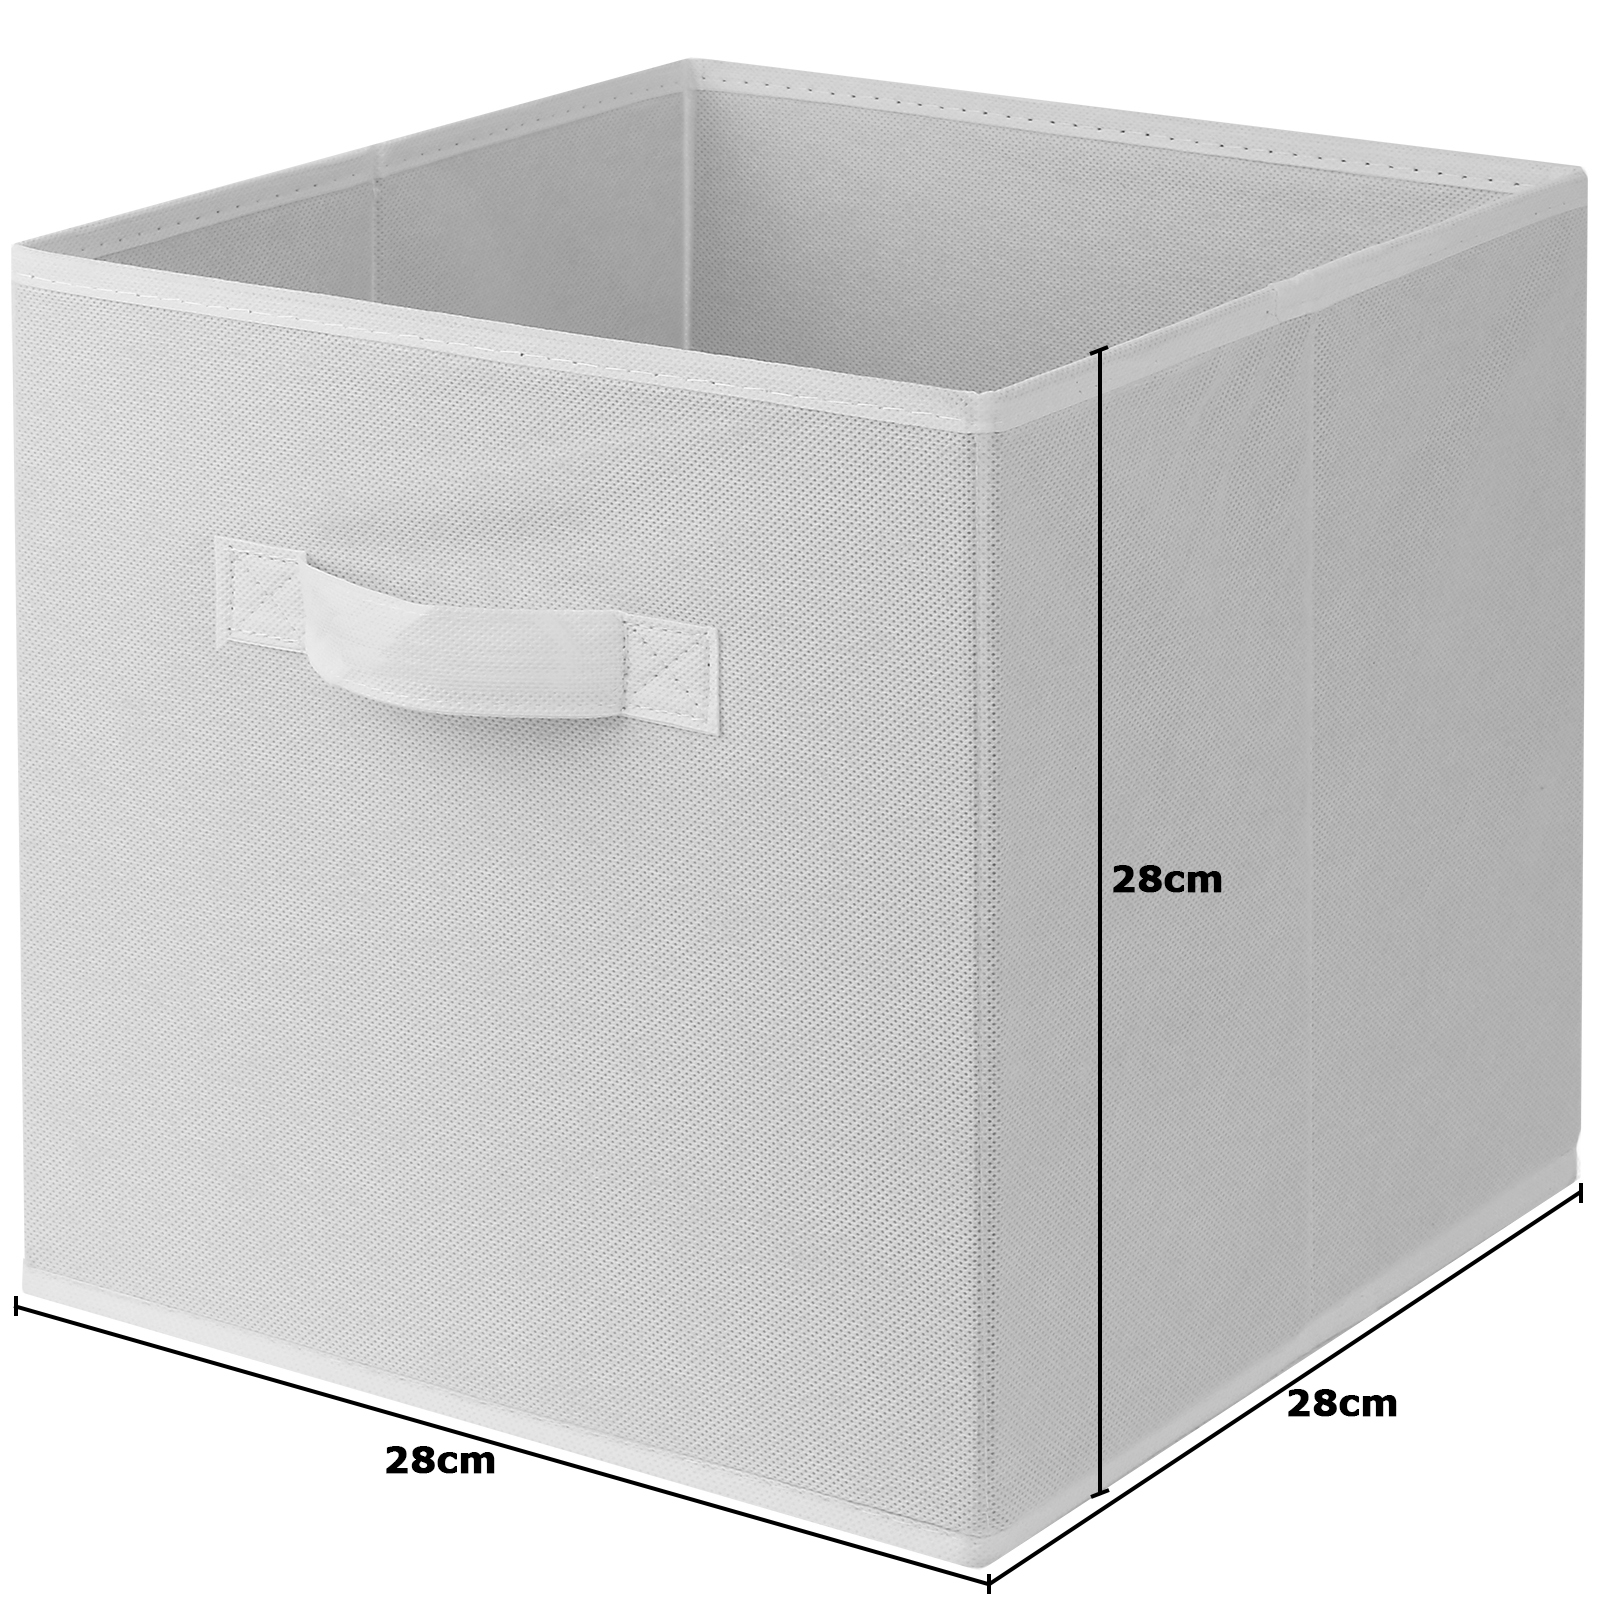 Shop for canvas square storage bins online at Target. Free shipping & returns and Free Returns· Everyday Savings· Free Shipping $35+· 5% Off W/ REDcard1,,+ followers on Twitter.